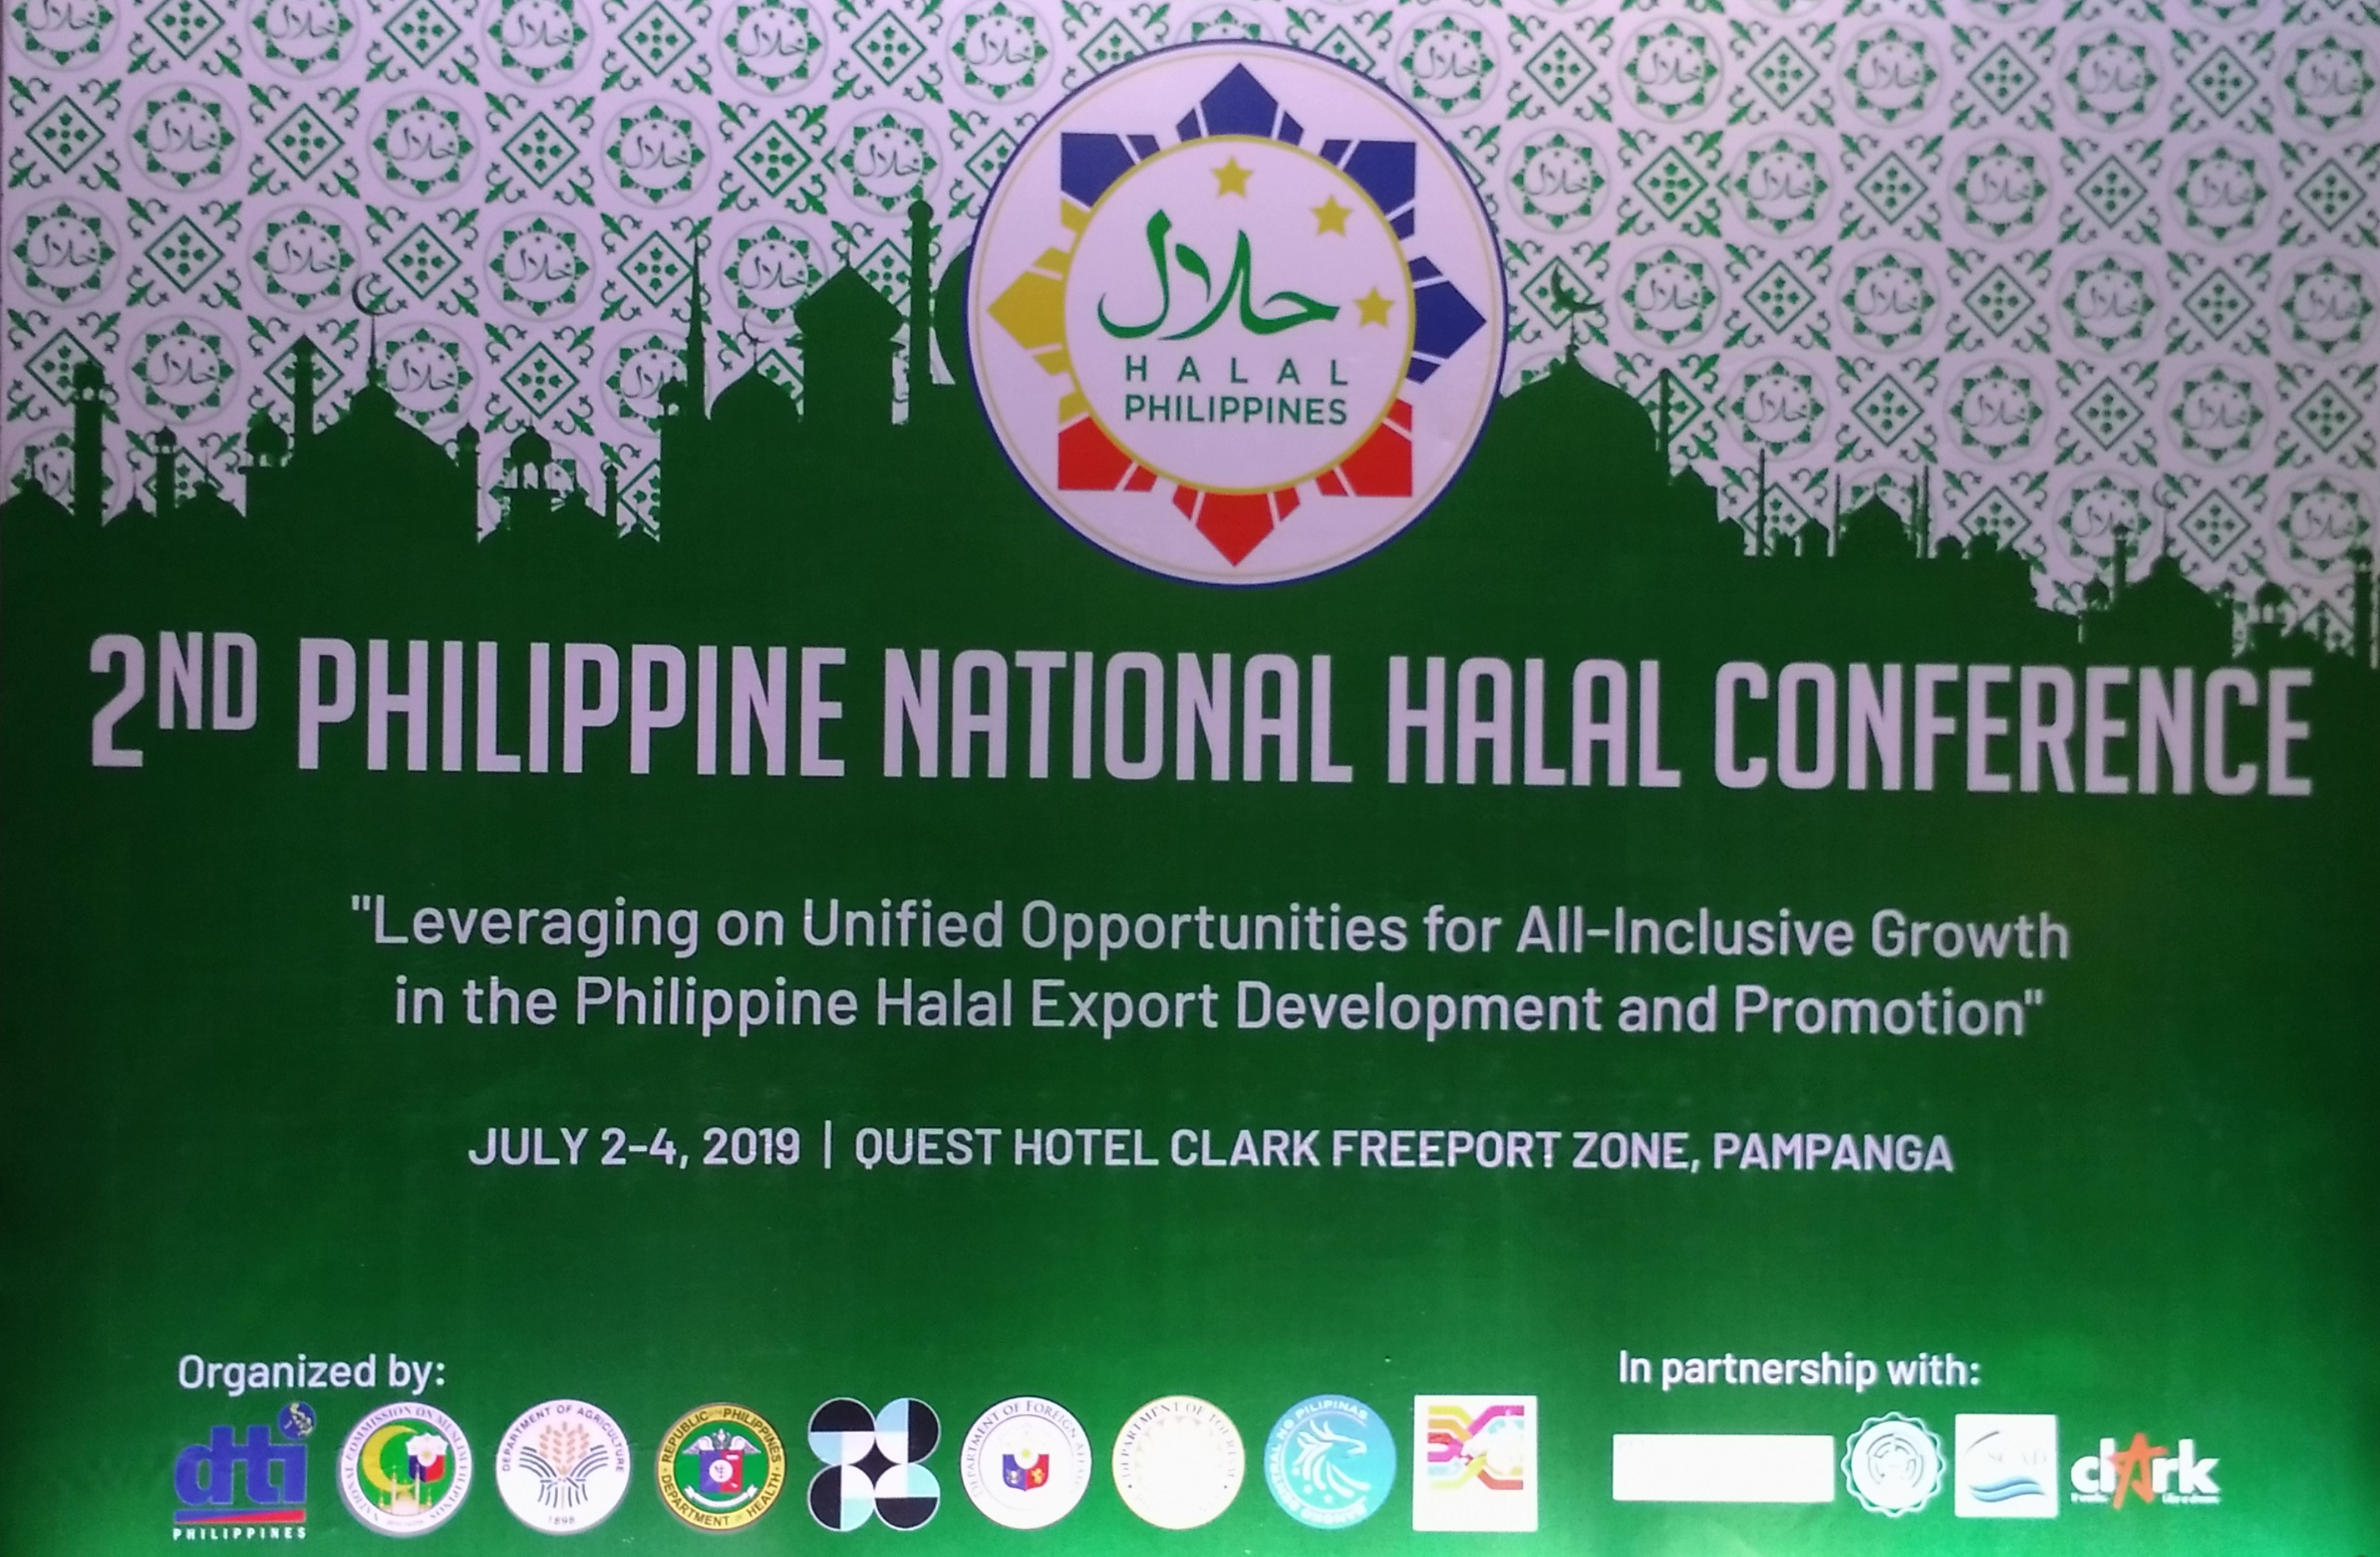 DTI Priming Up Region III on Halal as SEA Games 2019 Nears — Macatoman